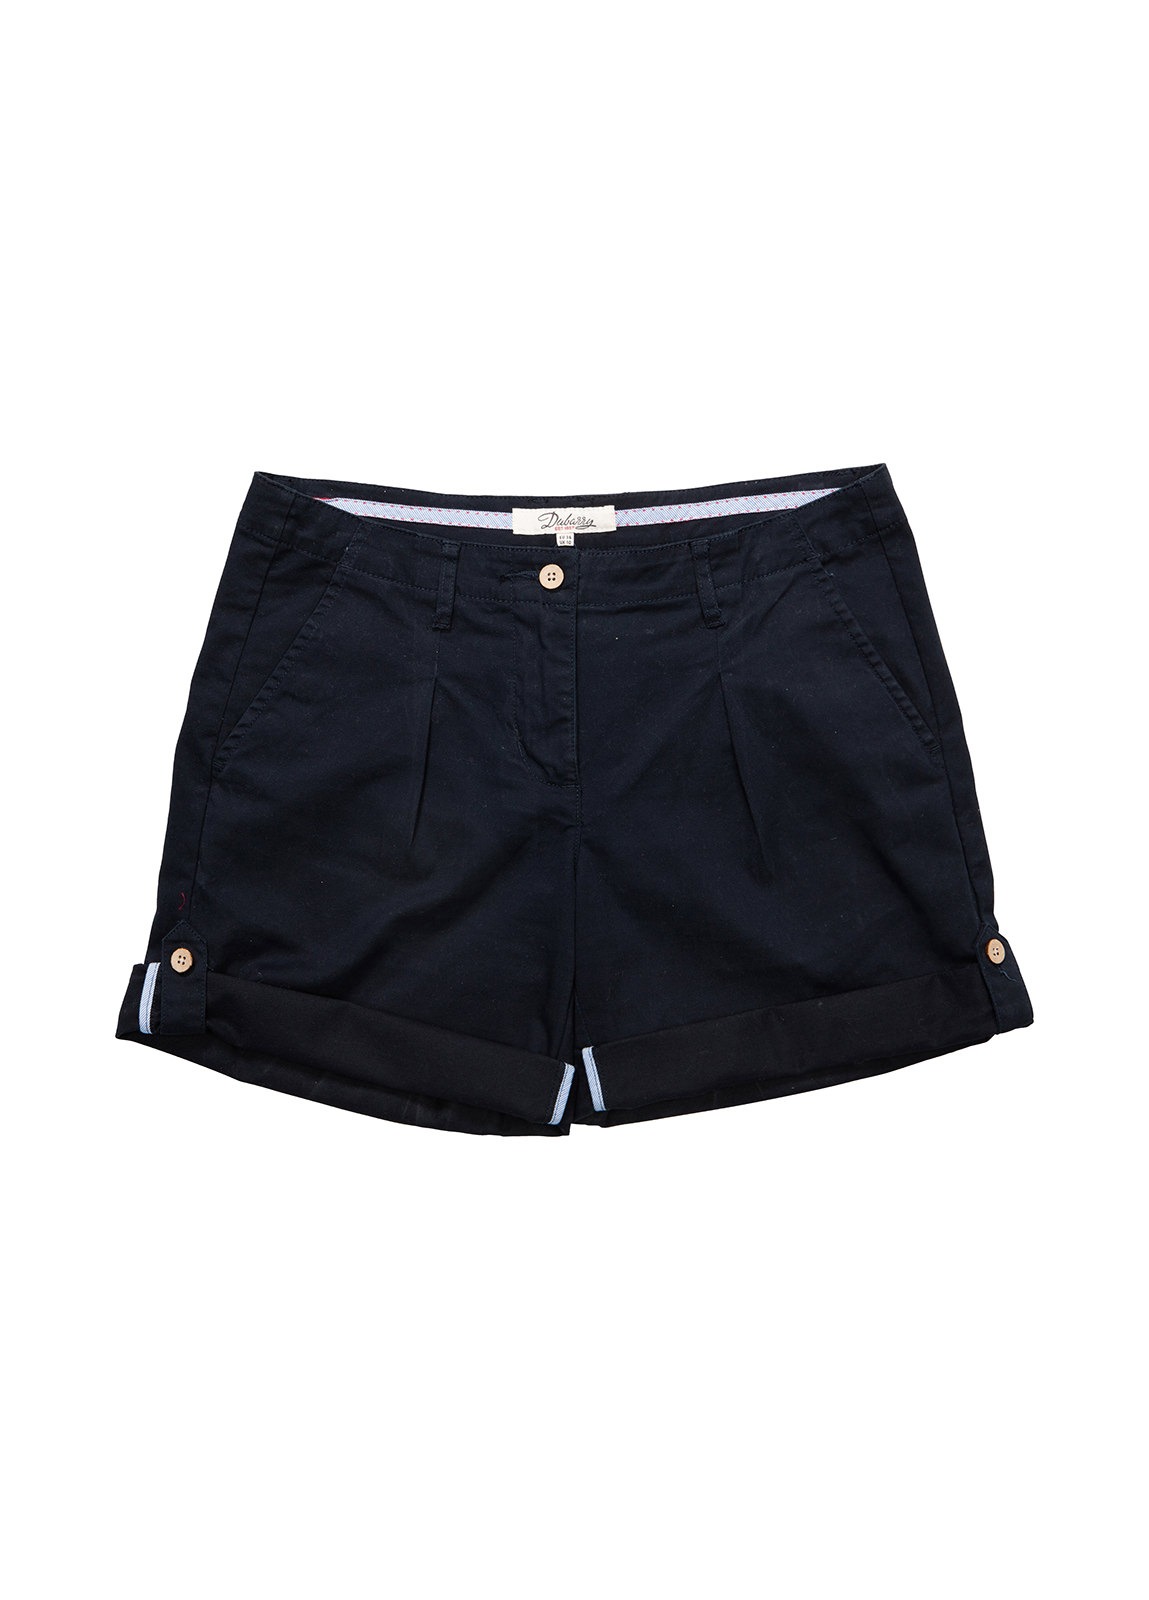 Summerhill ladies shorts - Navy